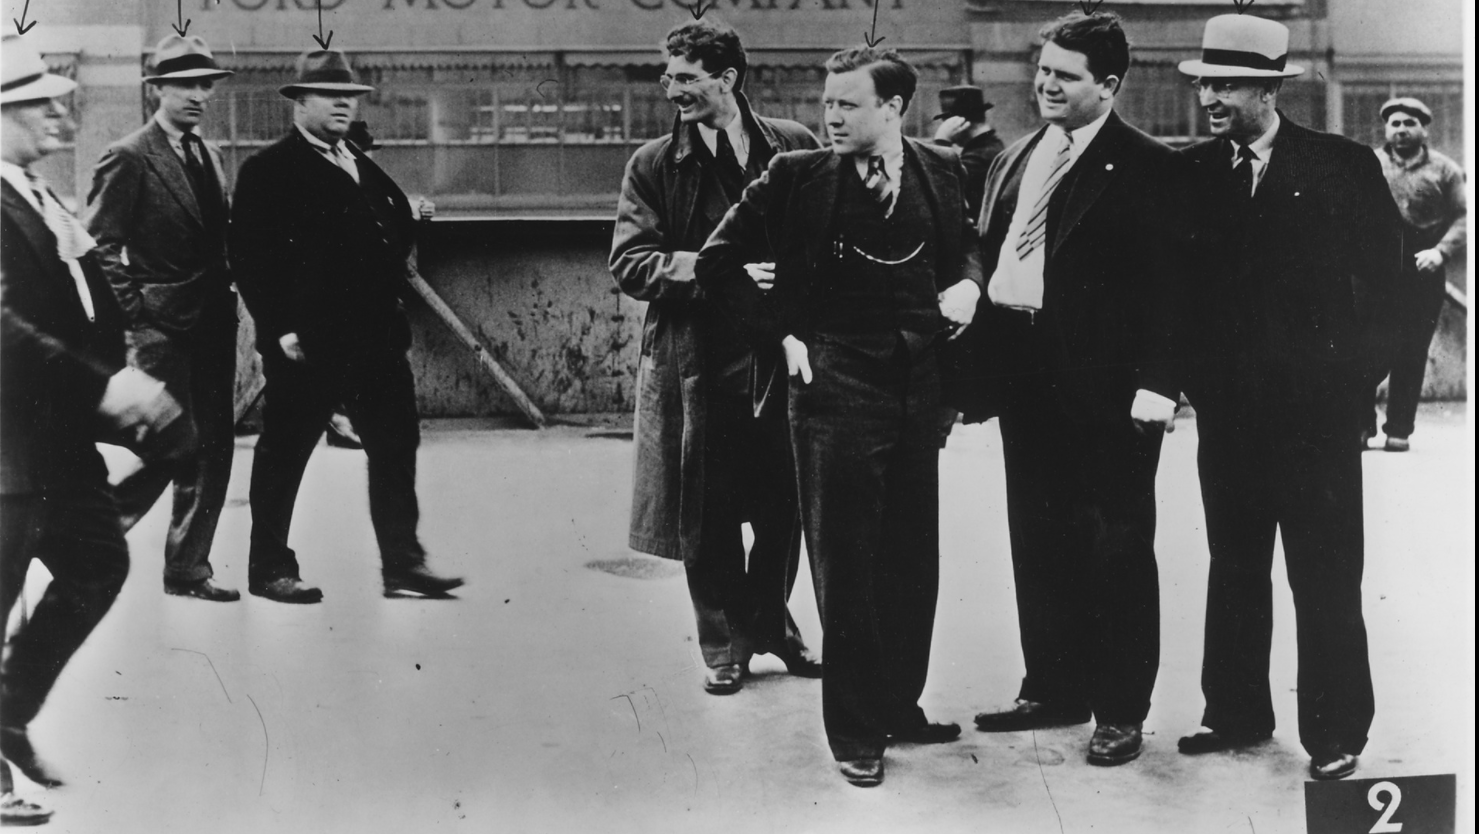 Let's Remember That Time UAW President Walter P. Reuther Wore A Suit To An Arse Beating